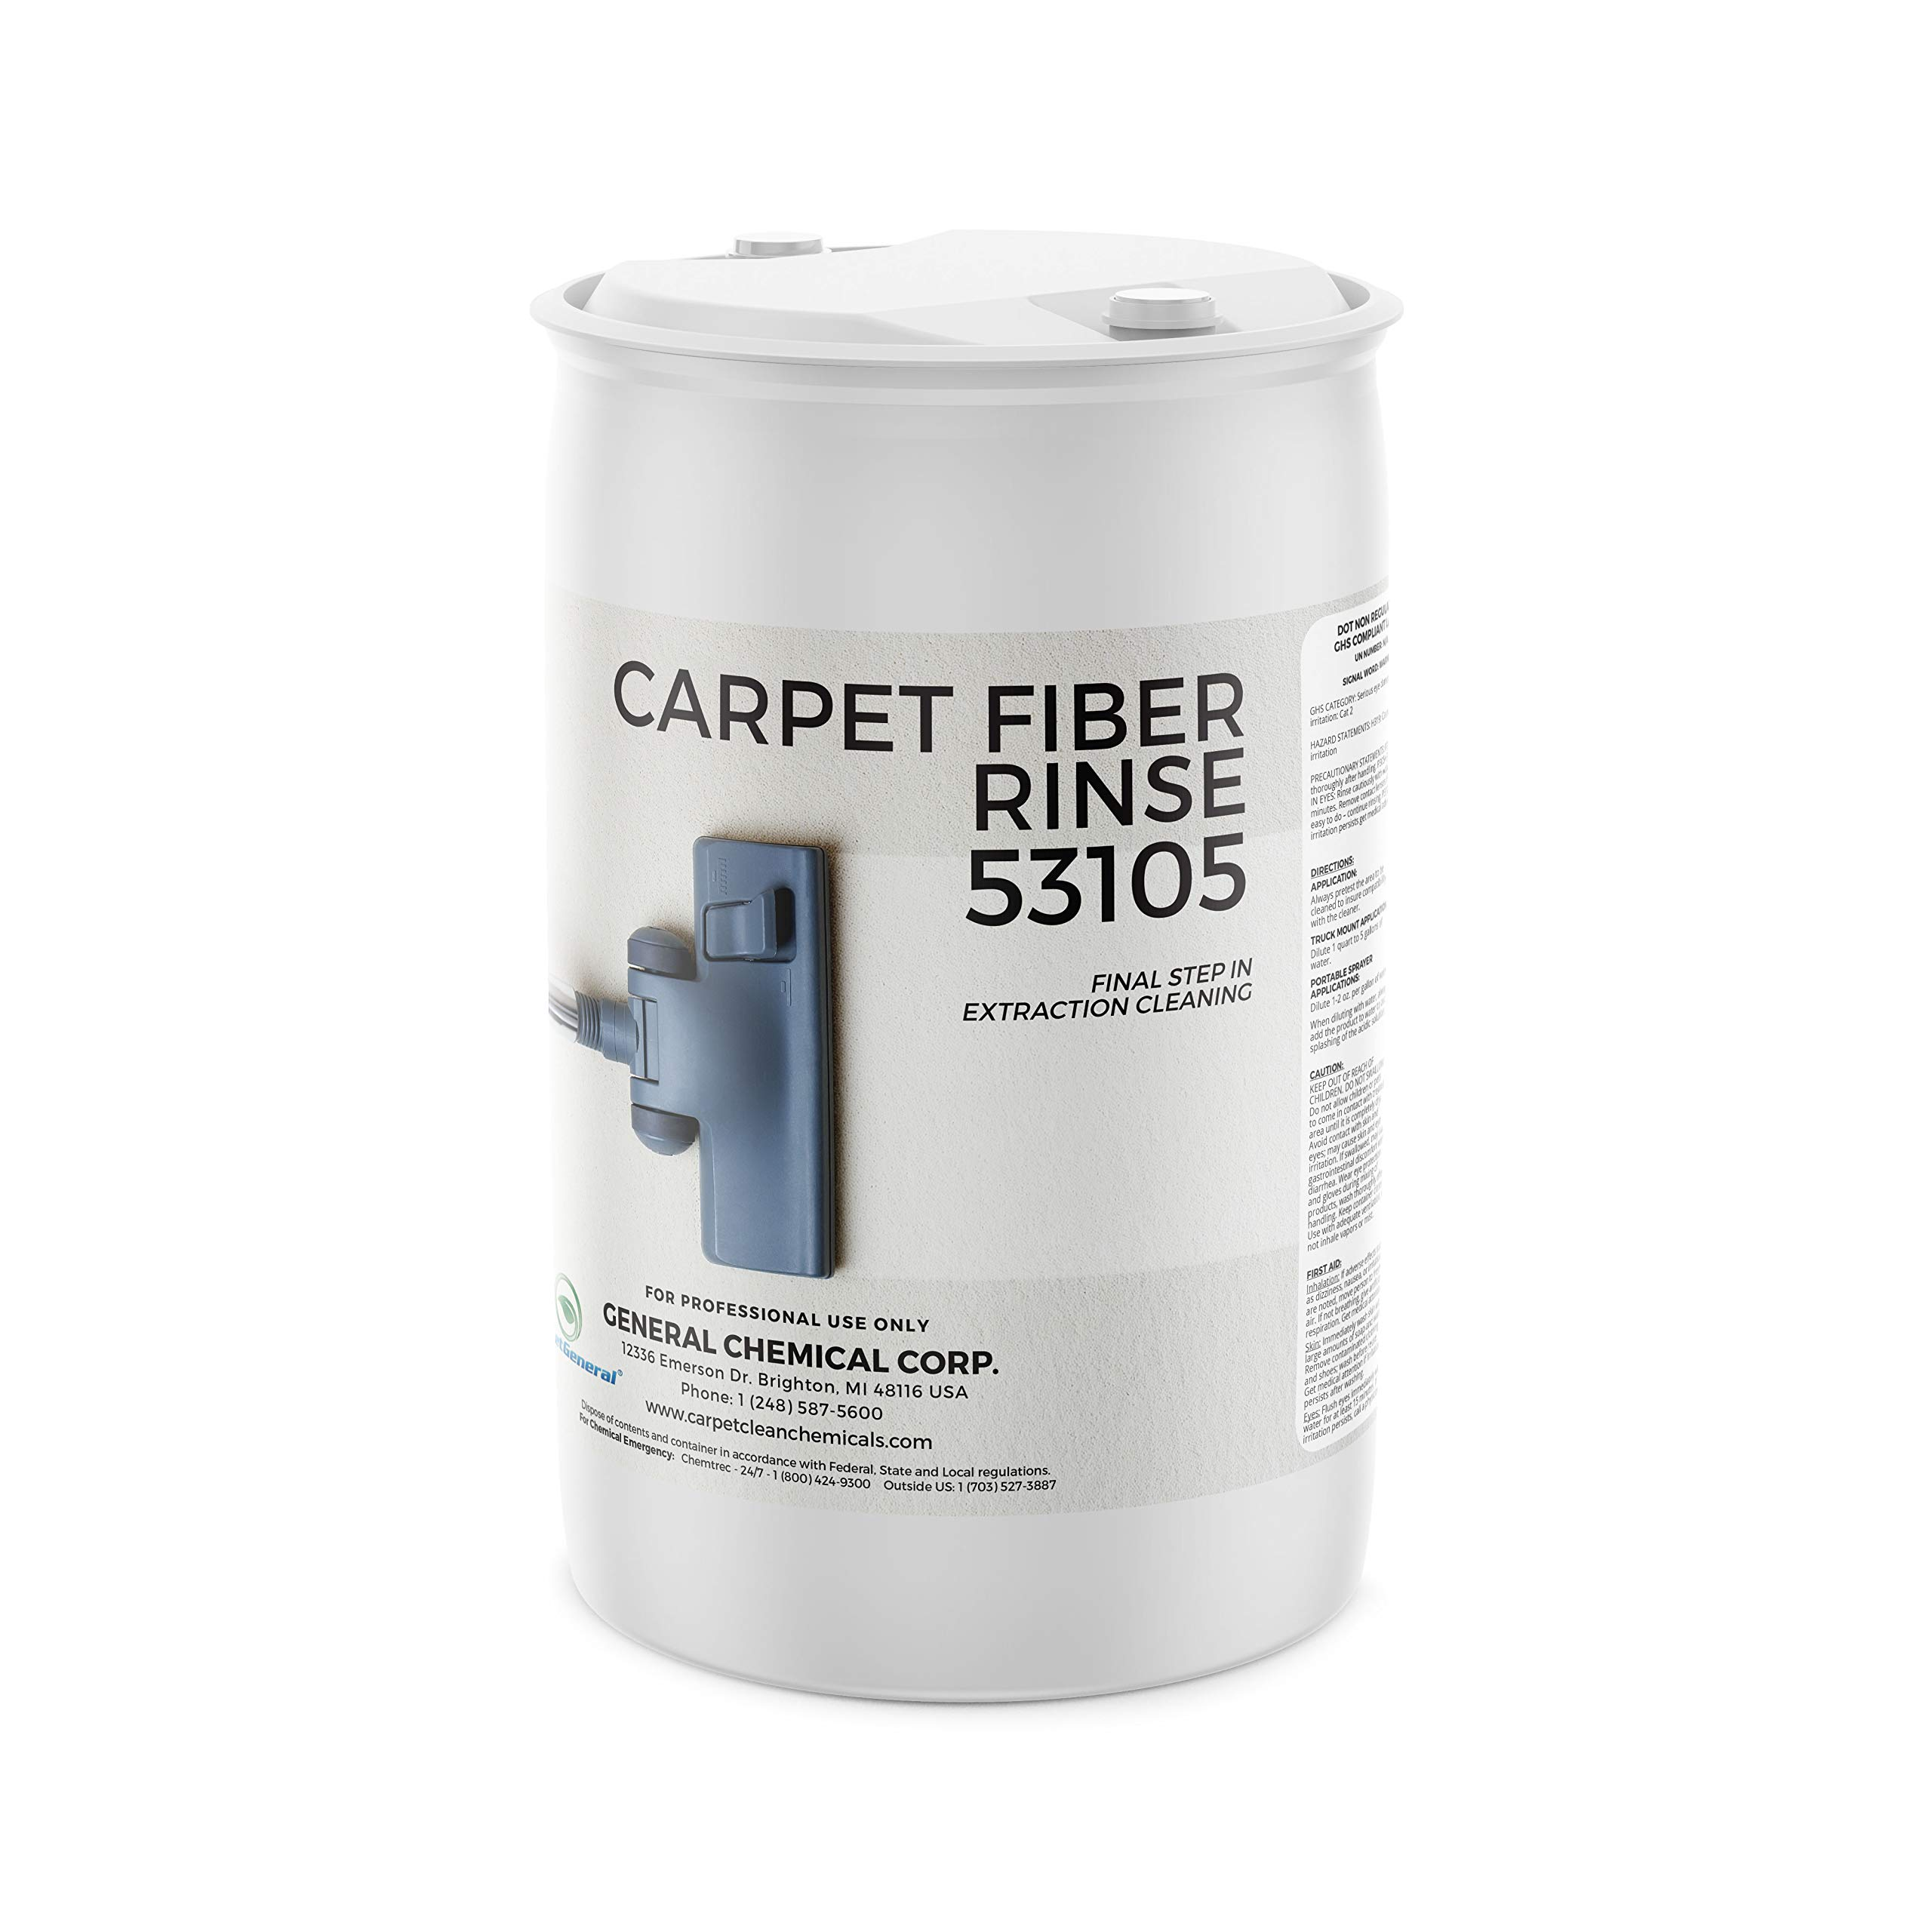 Carpet Fiber Rinse by CarpetGeneral | Professional Residue Attracting Agent | Prevents Browning, Yellowing & Bleeding of Carpet & Upholstery Dye | Residential & Commercial Use | Final Step | 55 Gallon